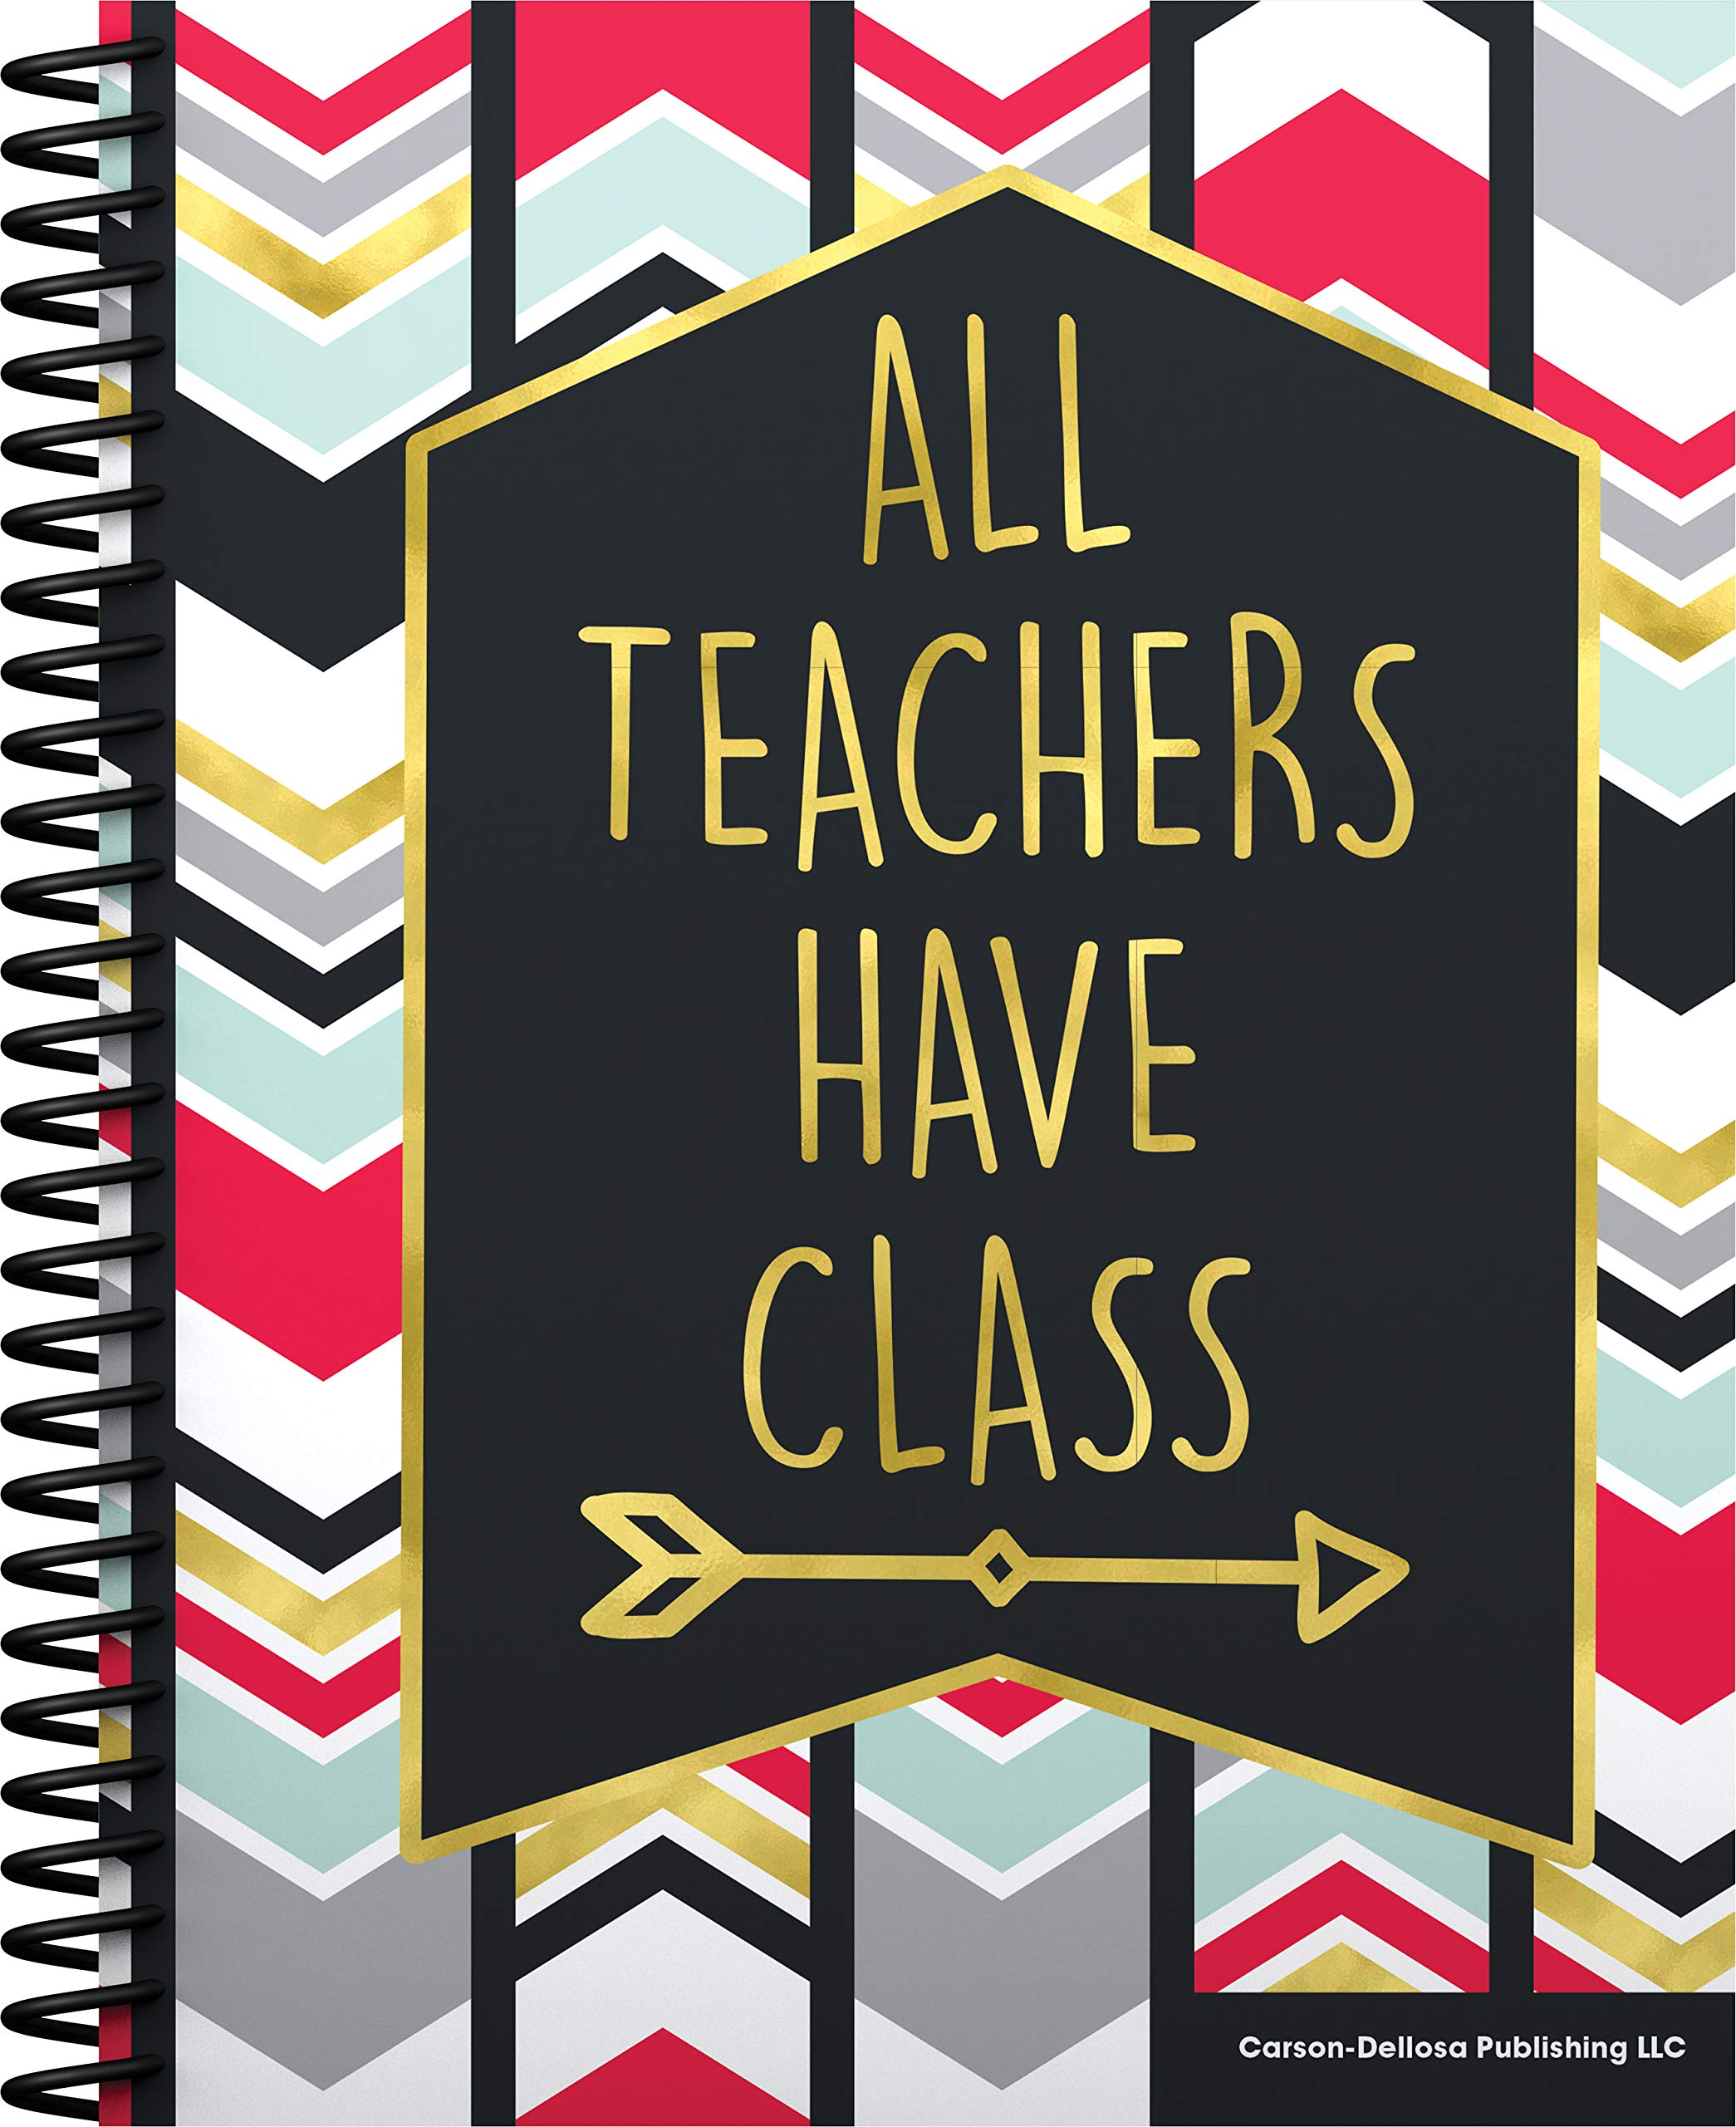 Carson-Dellosa Aim High Teacher Planner Plan Book